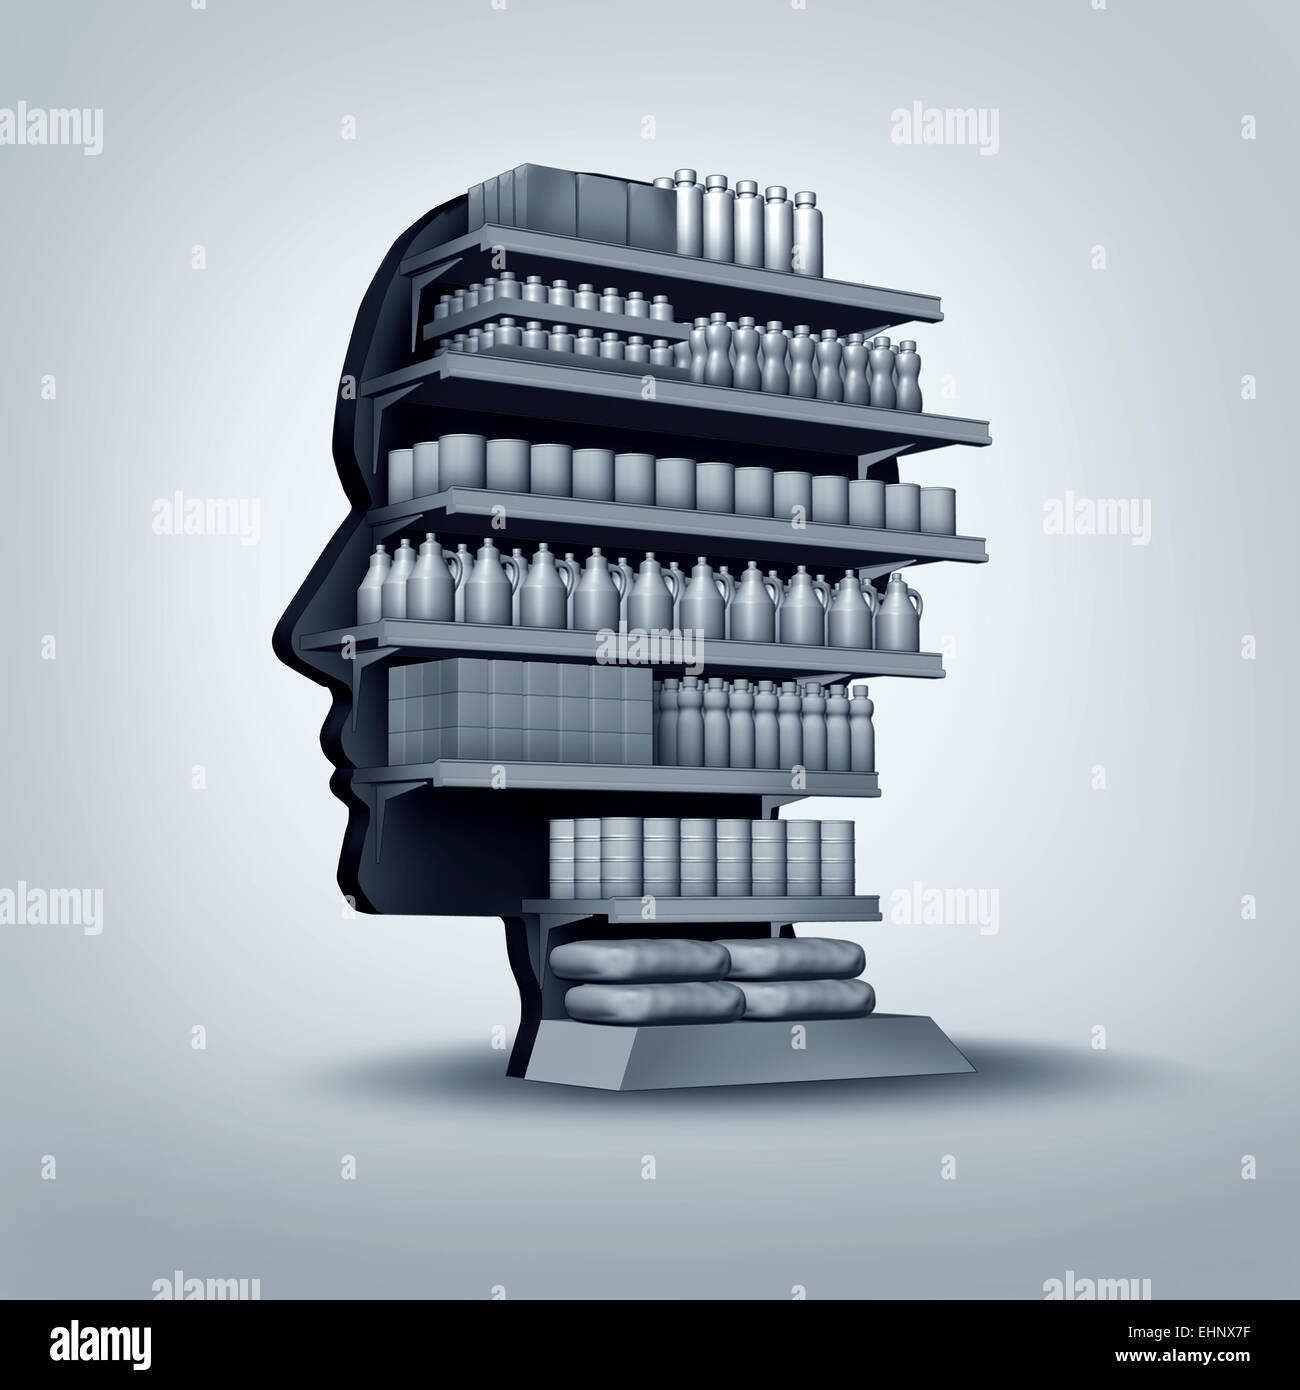 Consumer and customer concept as a store shelving unit shaped as a human head with generic products for sale as - Stock Image